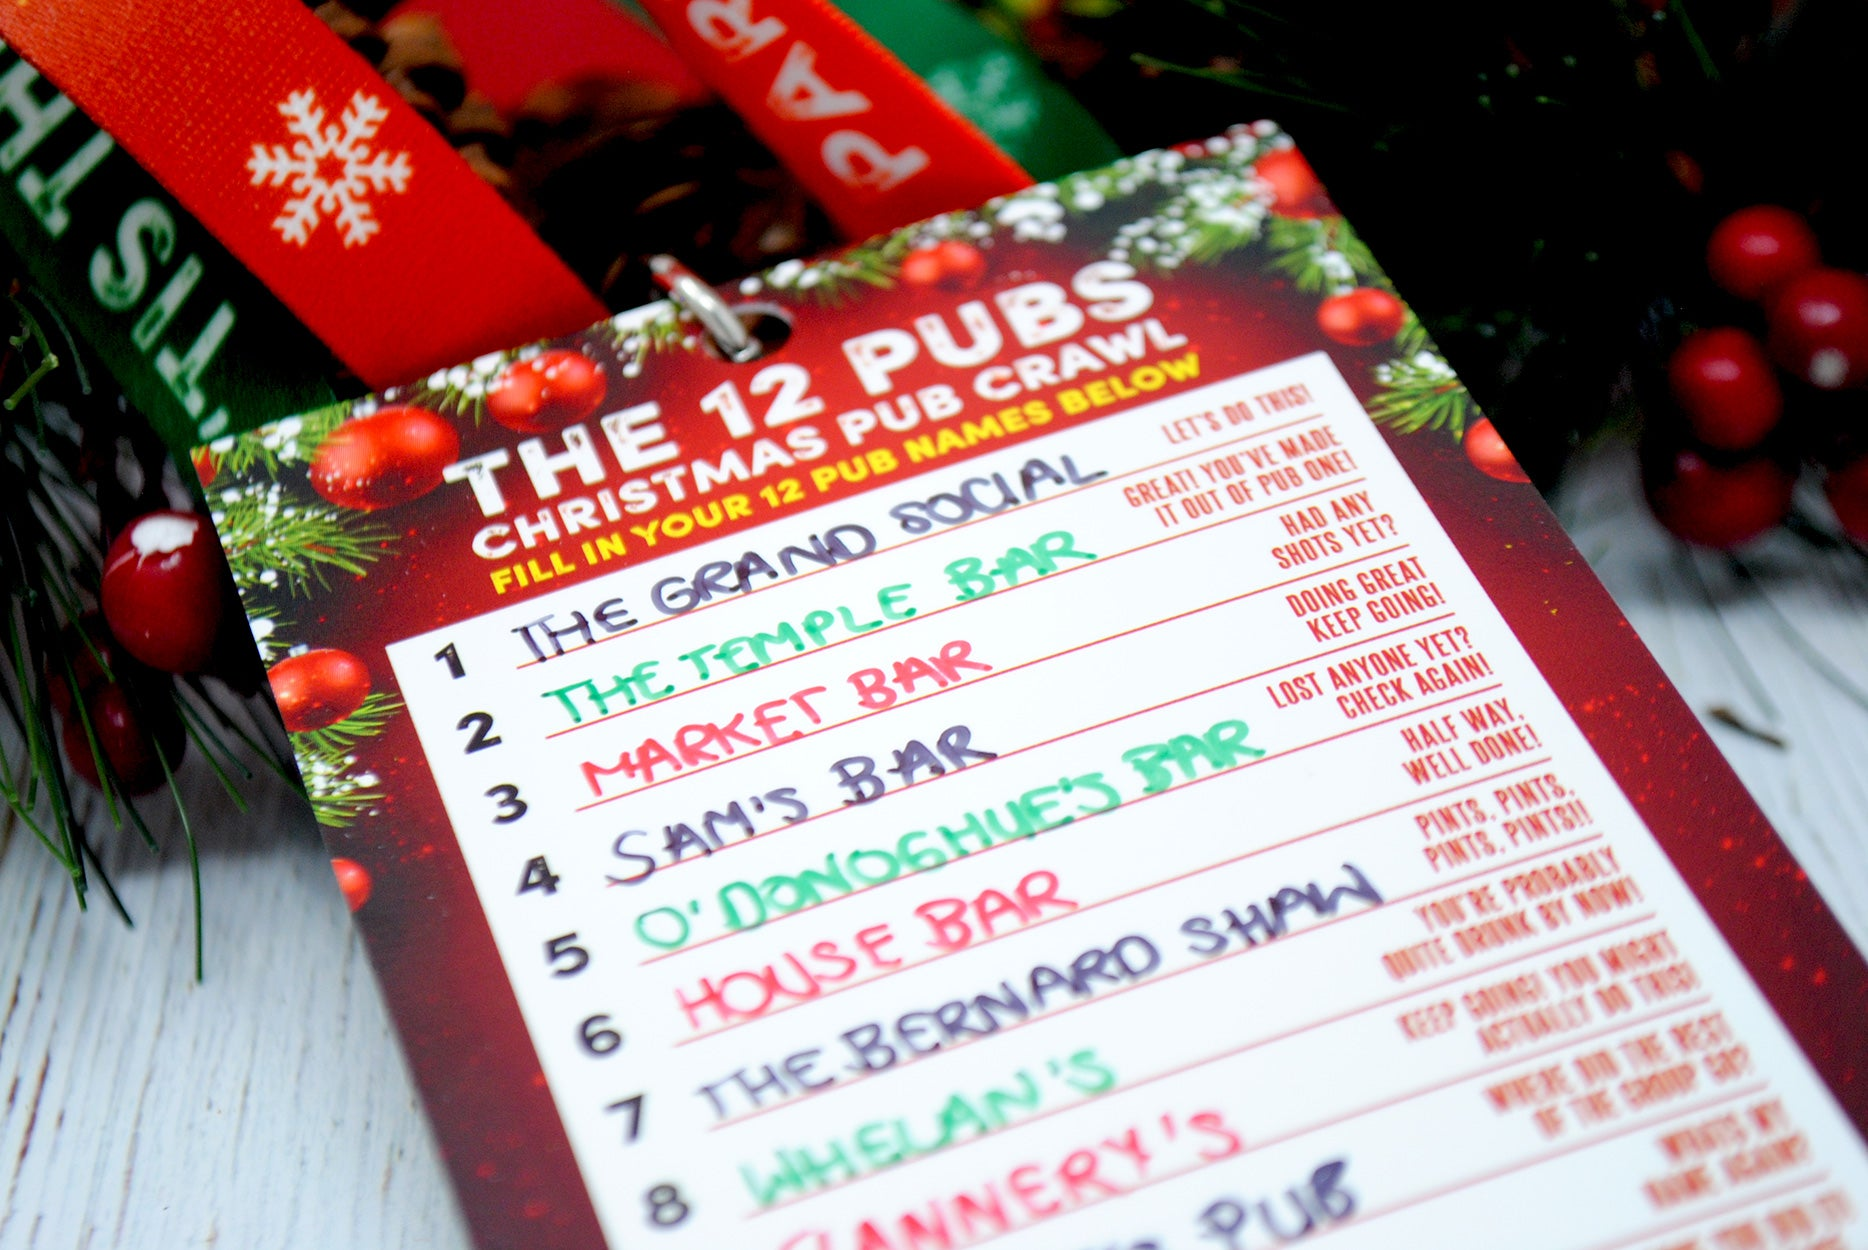 12 pubs of christmas dublin pub crawl guide